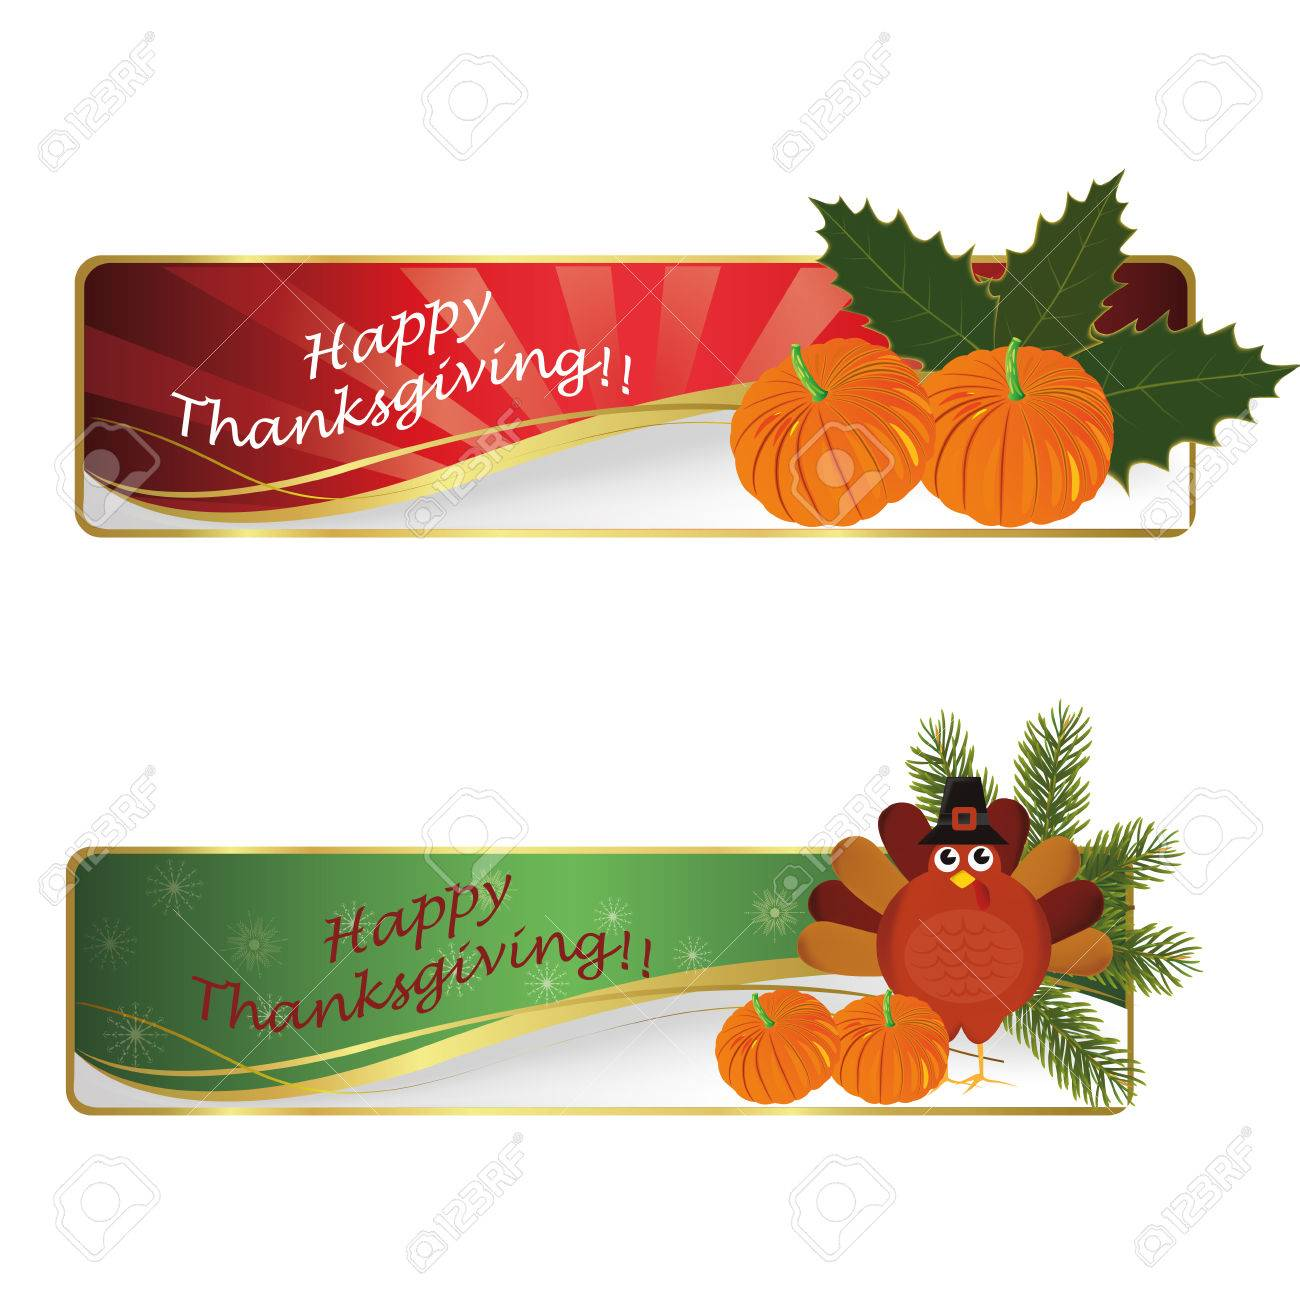 two signatures with pumpkins and a turkey for thanksgiving day - 23976603